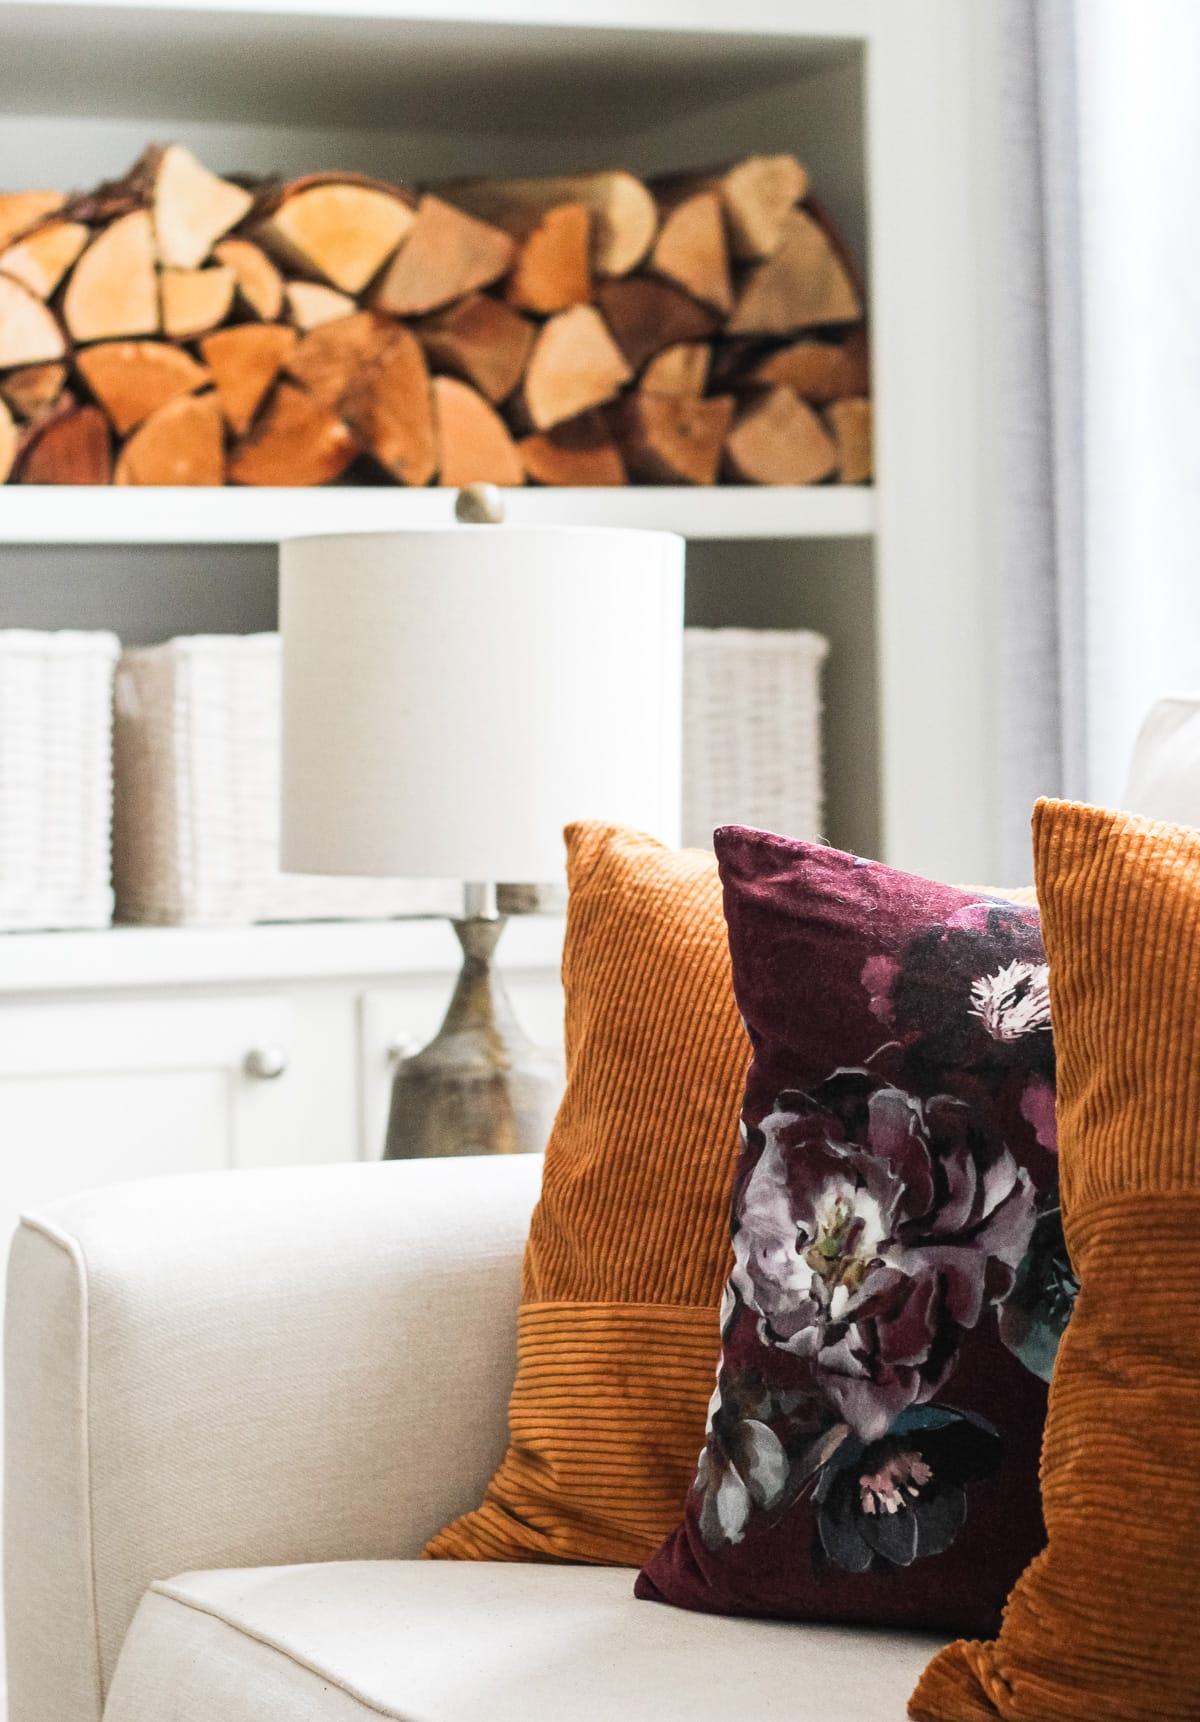 a close up of rust and floral pillows on a white couch. in the background is a lamp and a stack of wood in white shelving